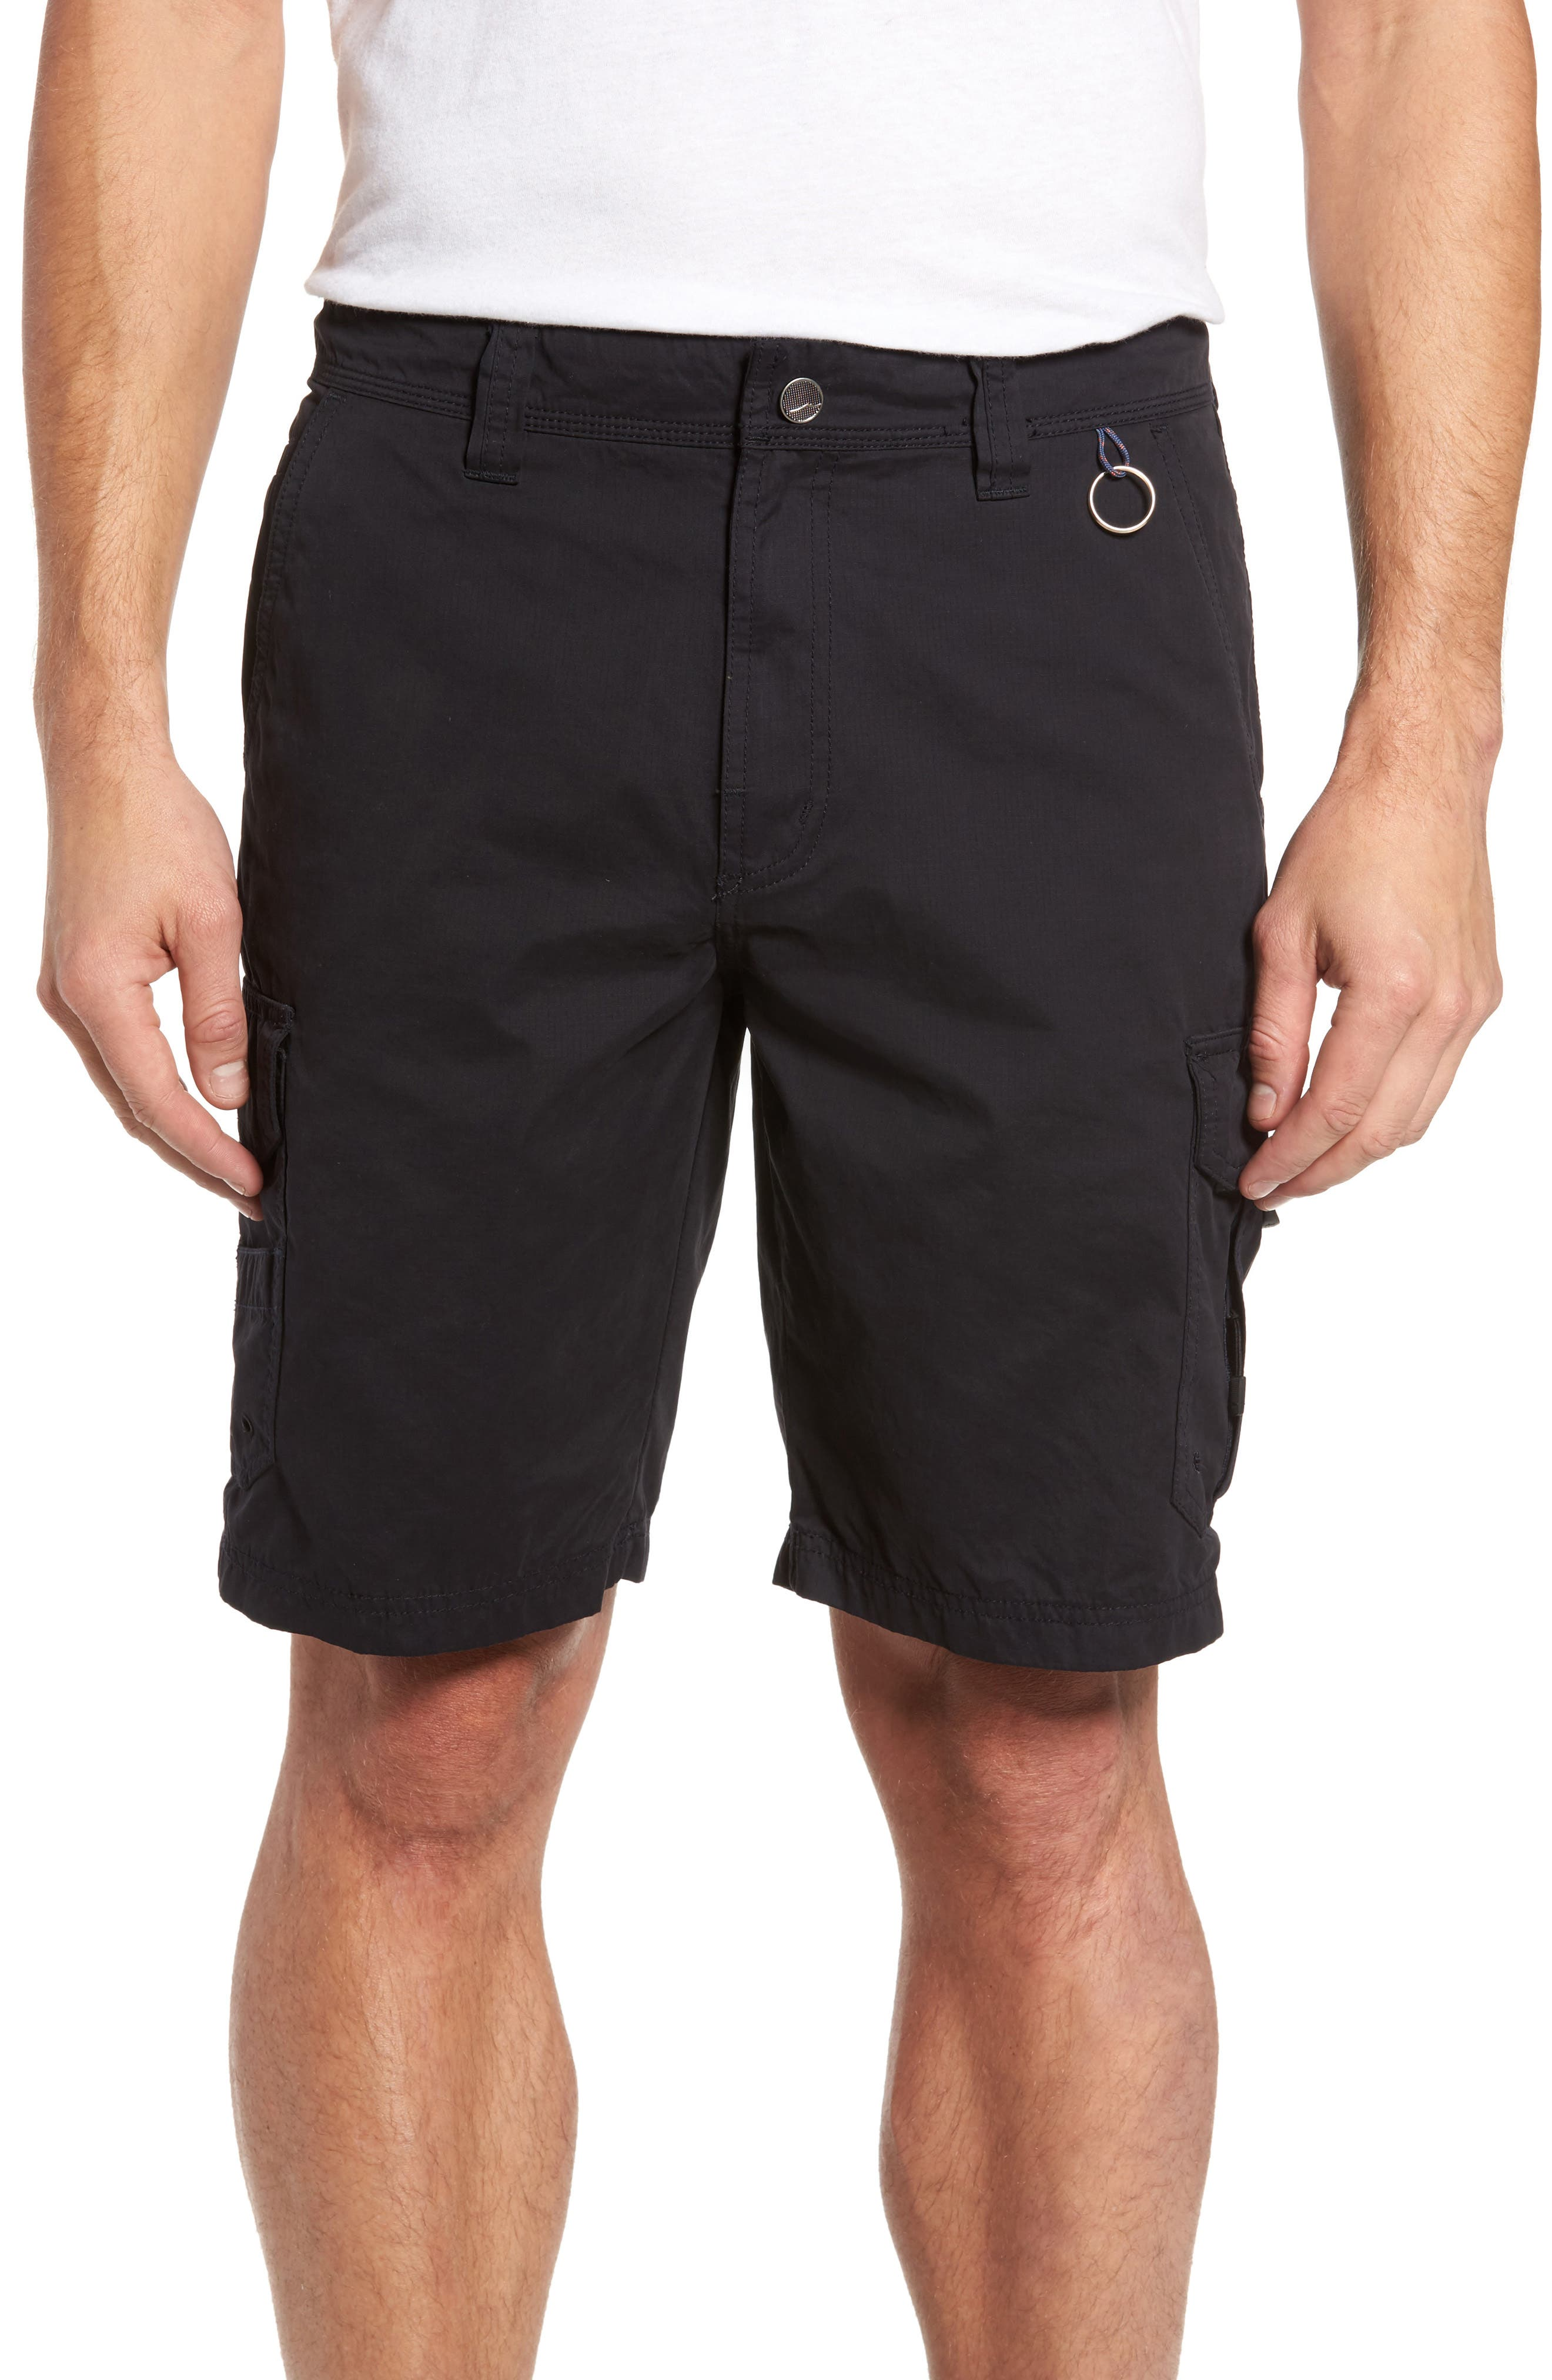 Catch & Release Regular Fit Hybrid Cargo Shorts,                             Main thumbnail 1, color,                             Charcoal